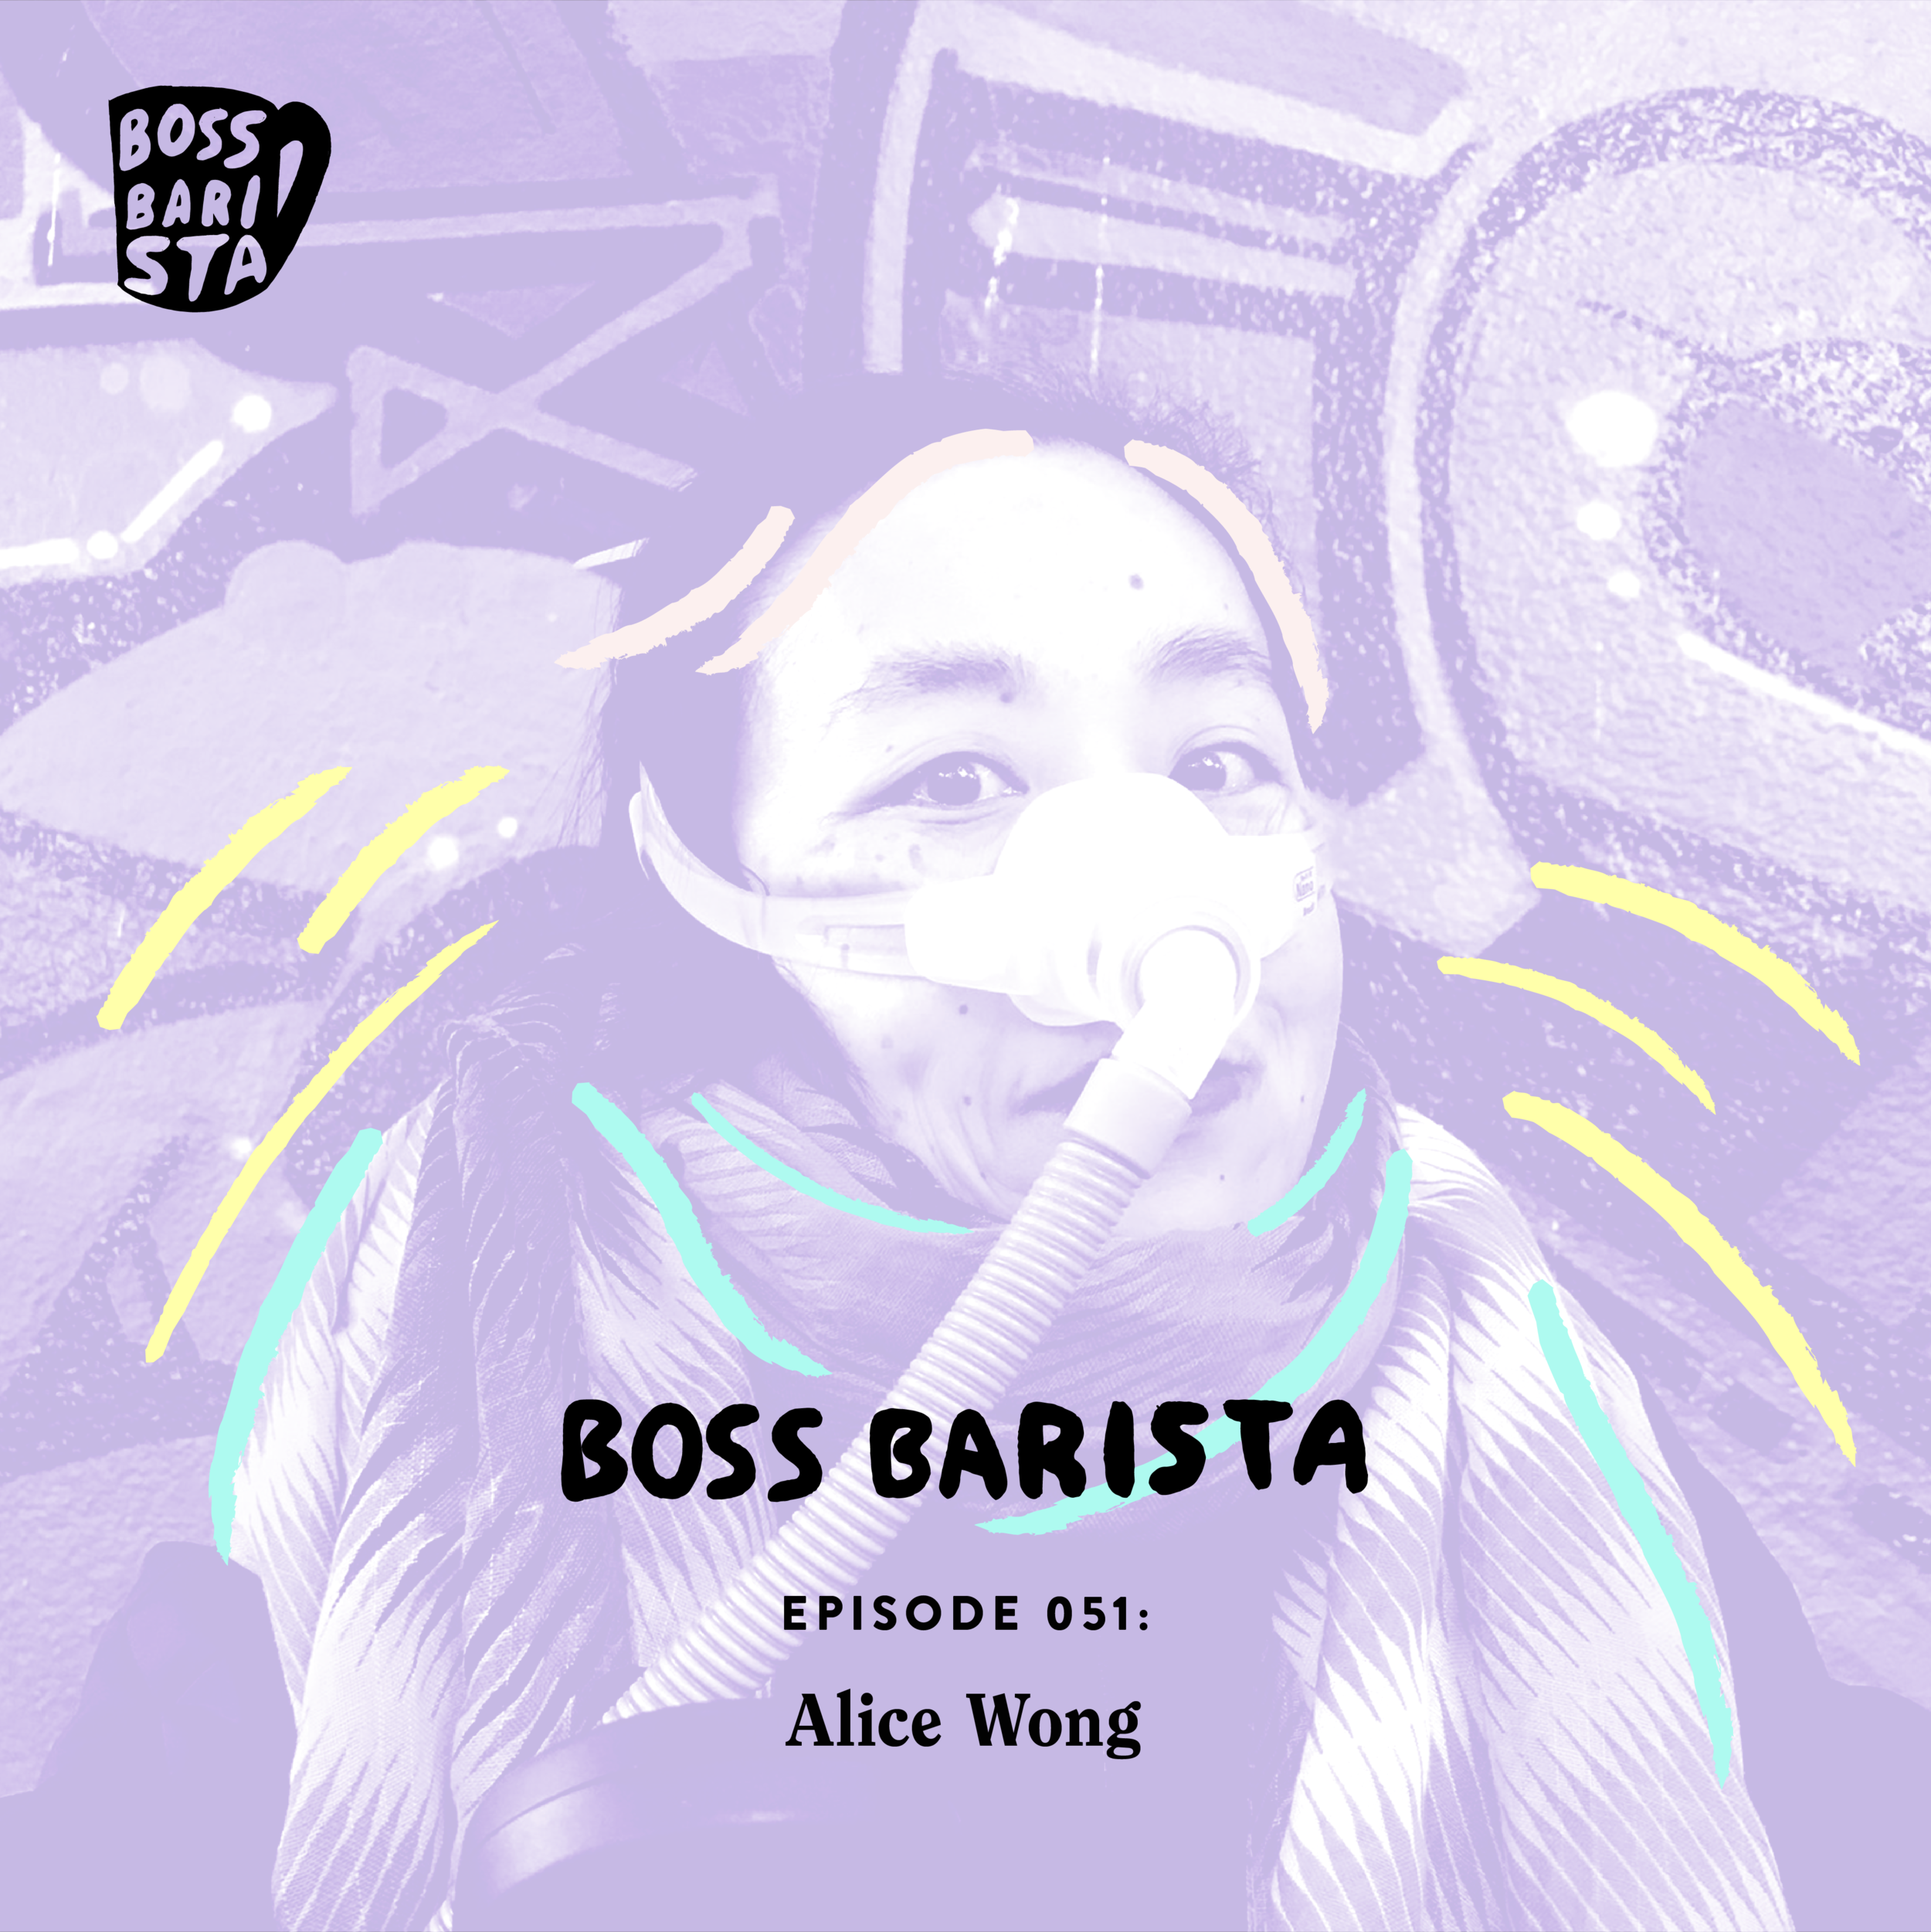 Boss_Barista_051_Cover_EPISODE_COVER.png